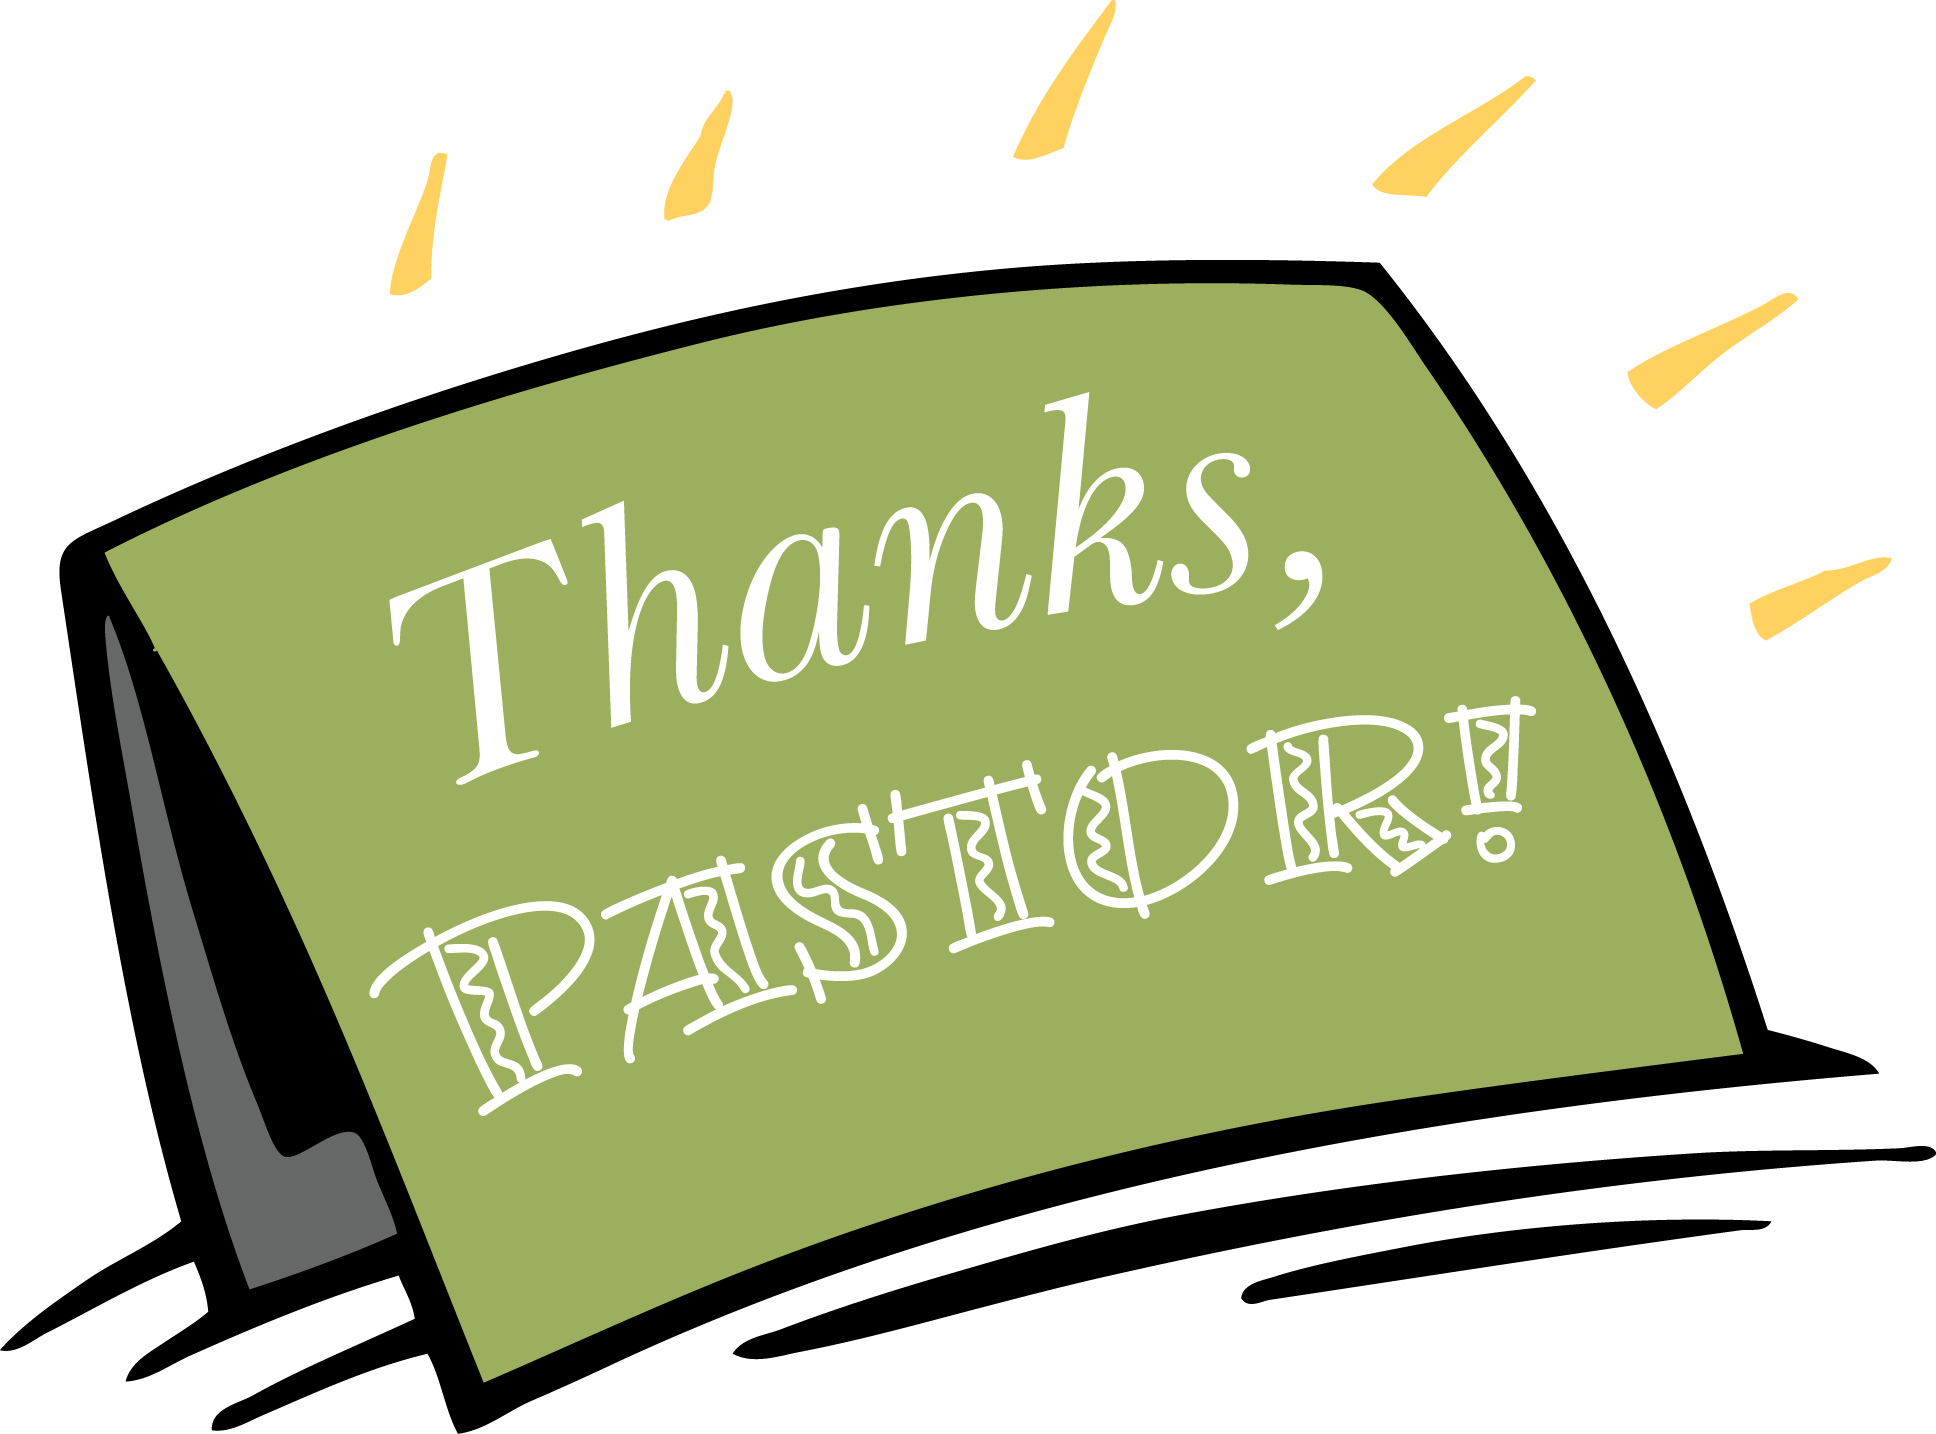 pastor 23 anniversary scriptures just b cause civil war clipart black and white civil war clipart black and white free